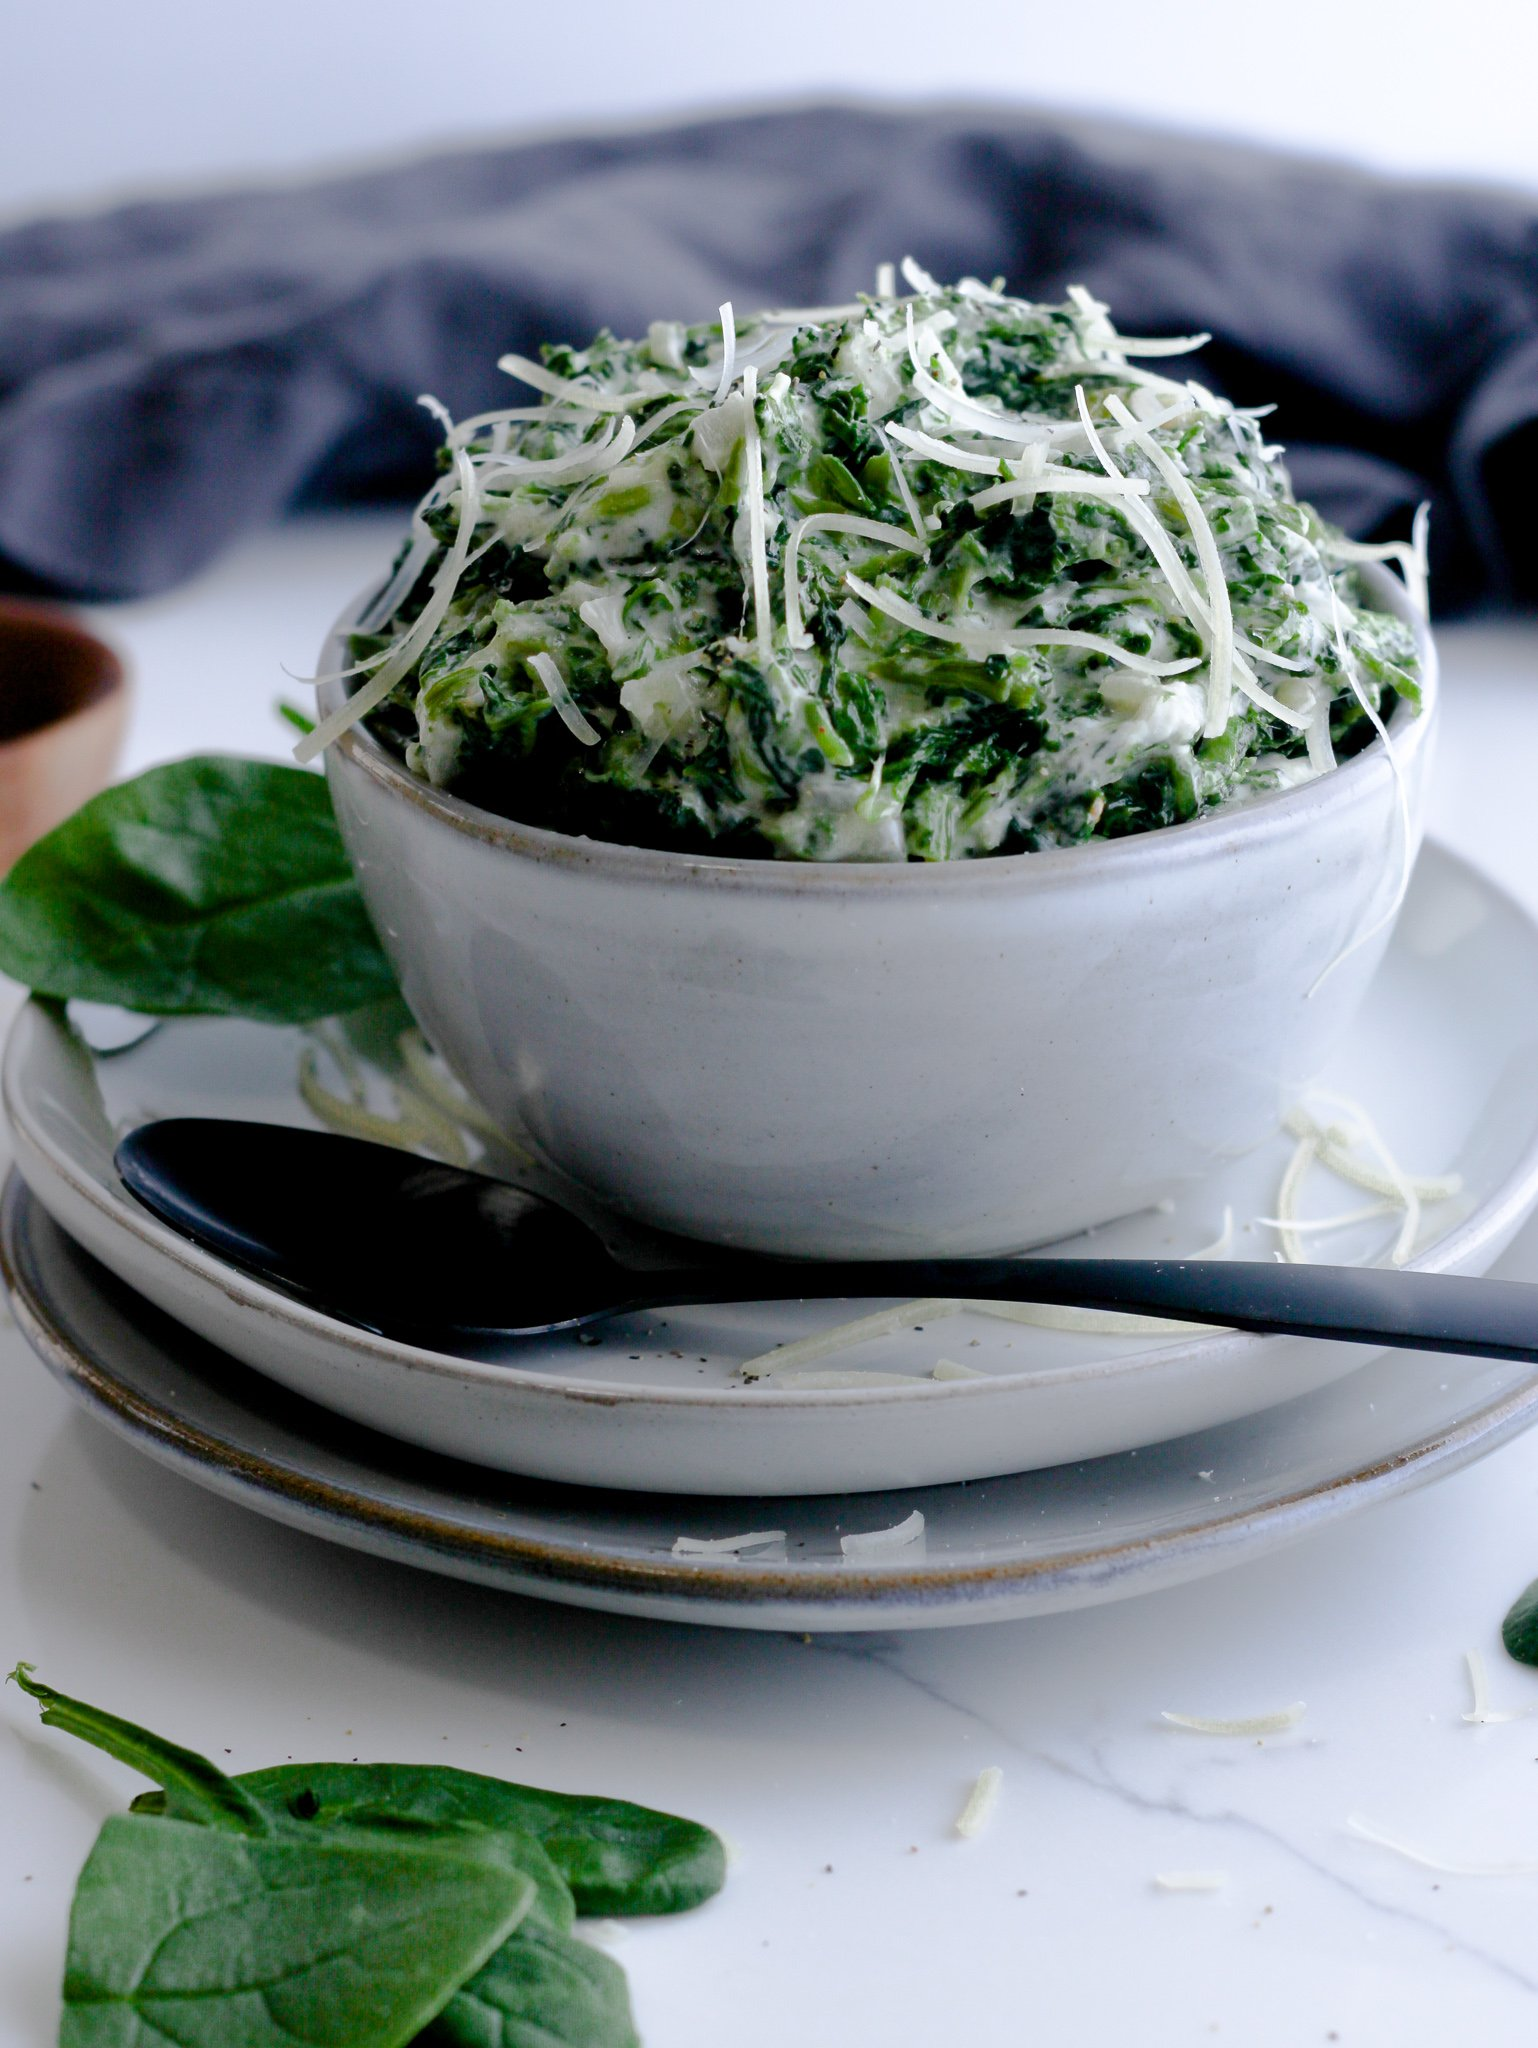 Creamed spinach made and sitting in a light gray bowl over two stacked gray plates surrounded by more fresh spinach and a gray table linen ready to enjoyed by the whole family.